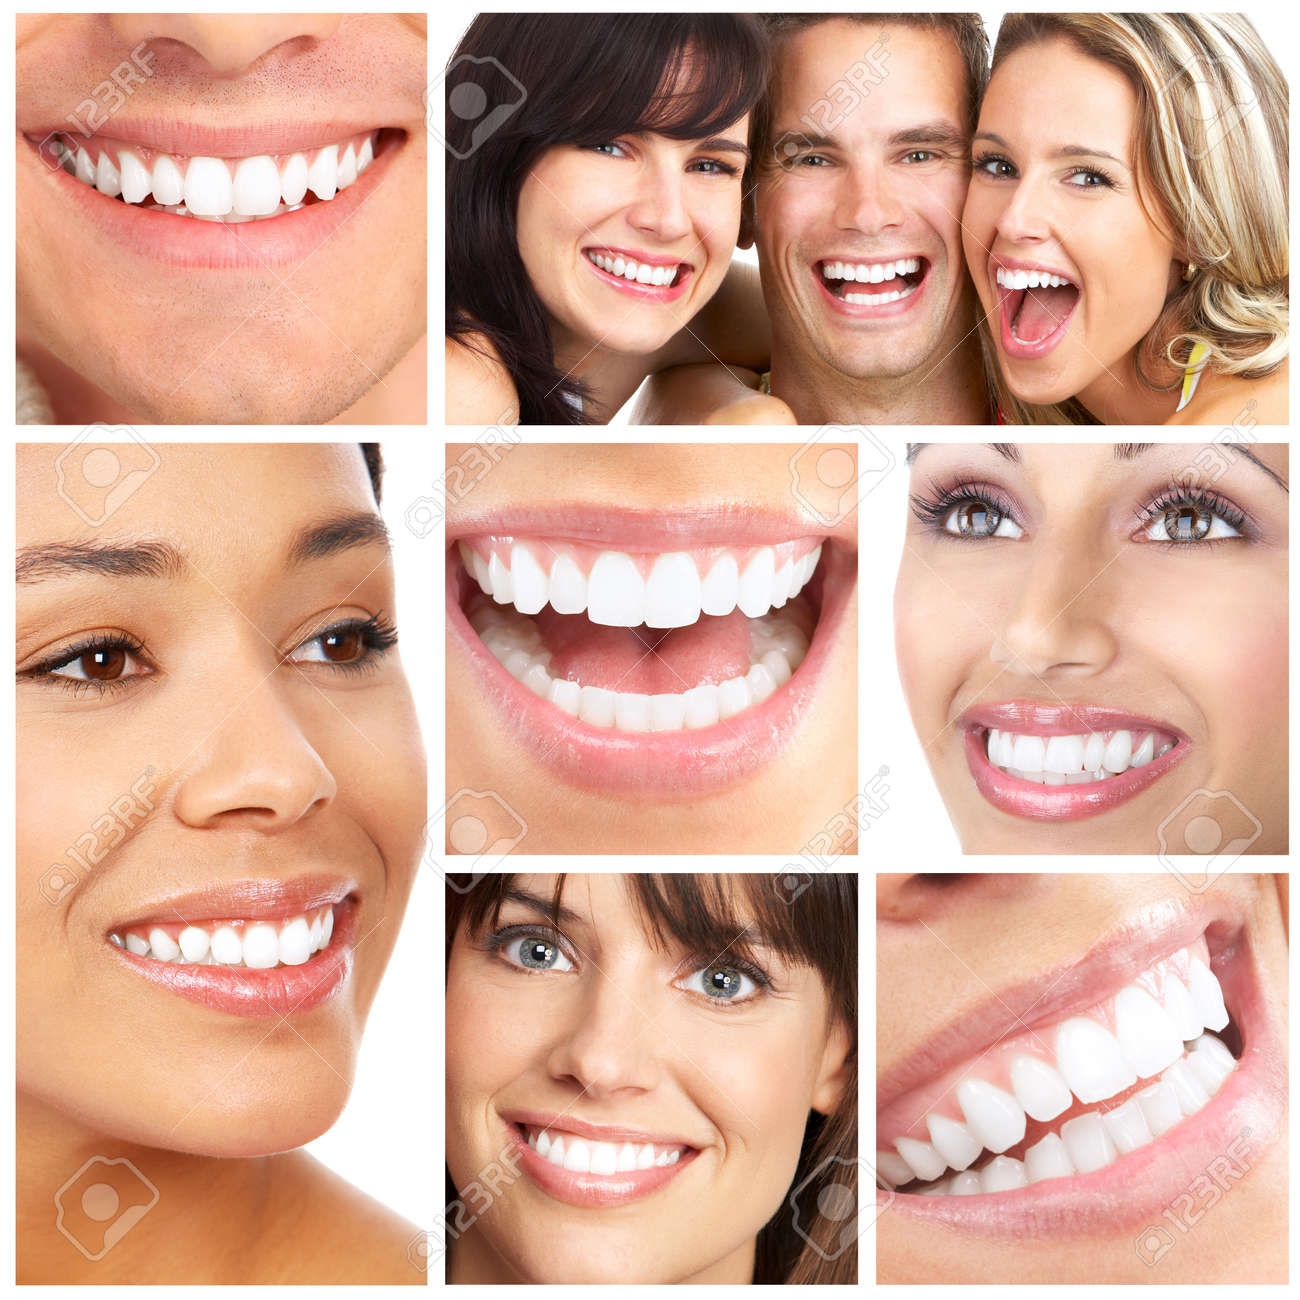 Faces of smiling people. Teeth care. Smile Stock Photo - 8592077